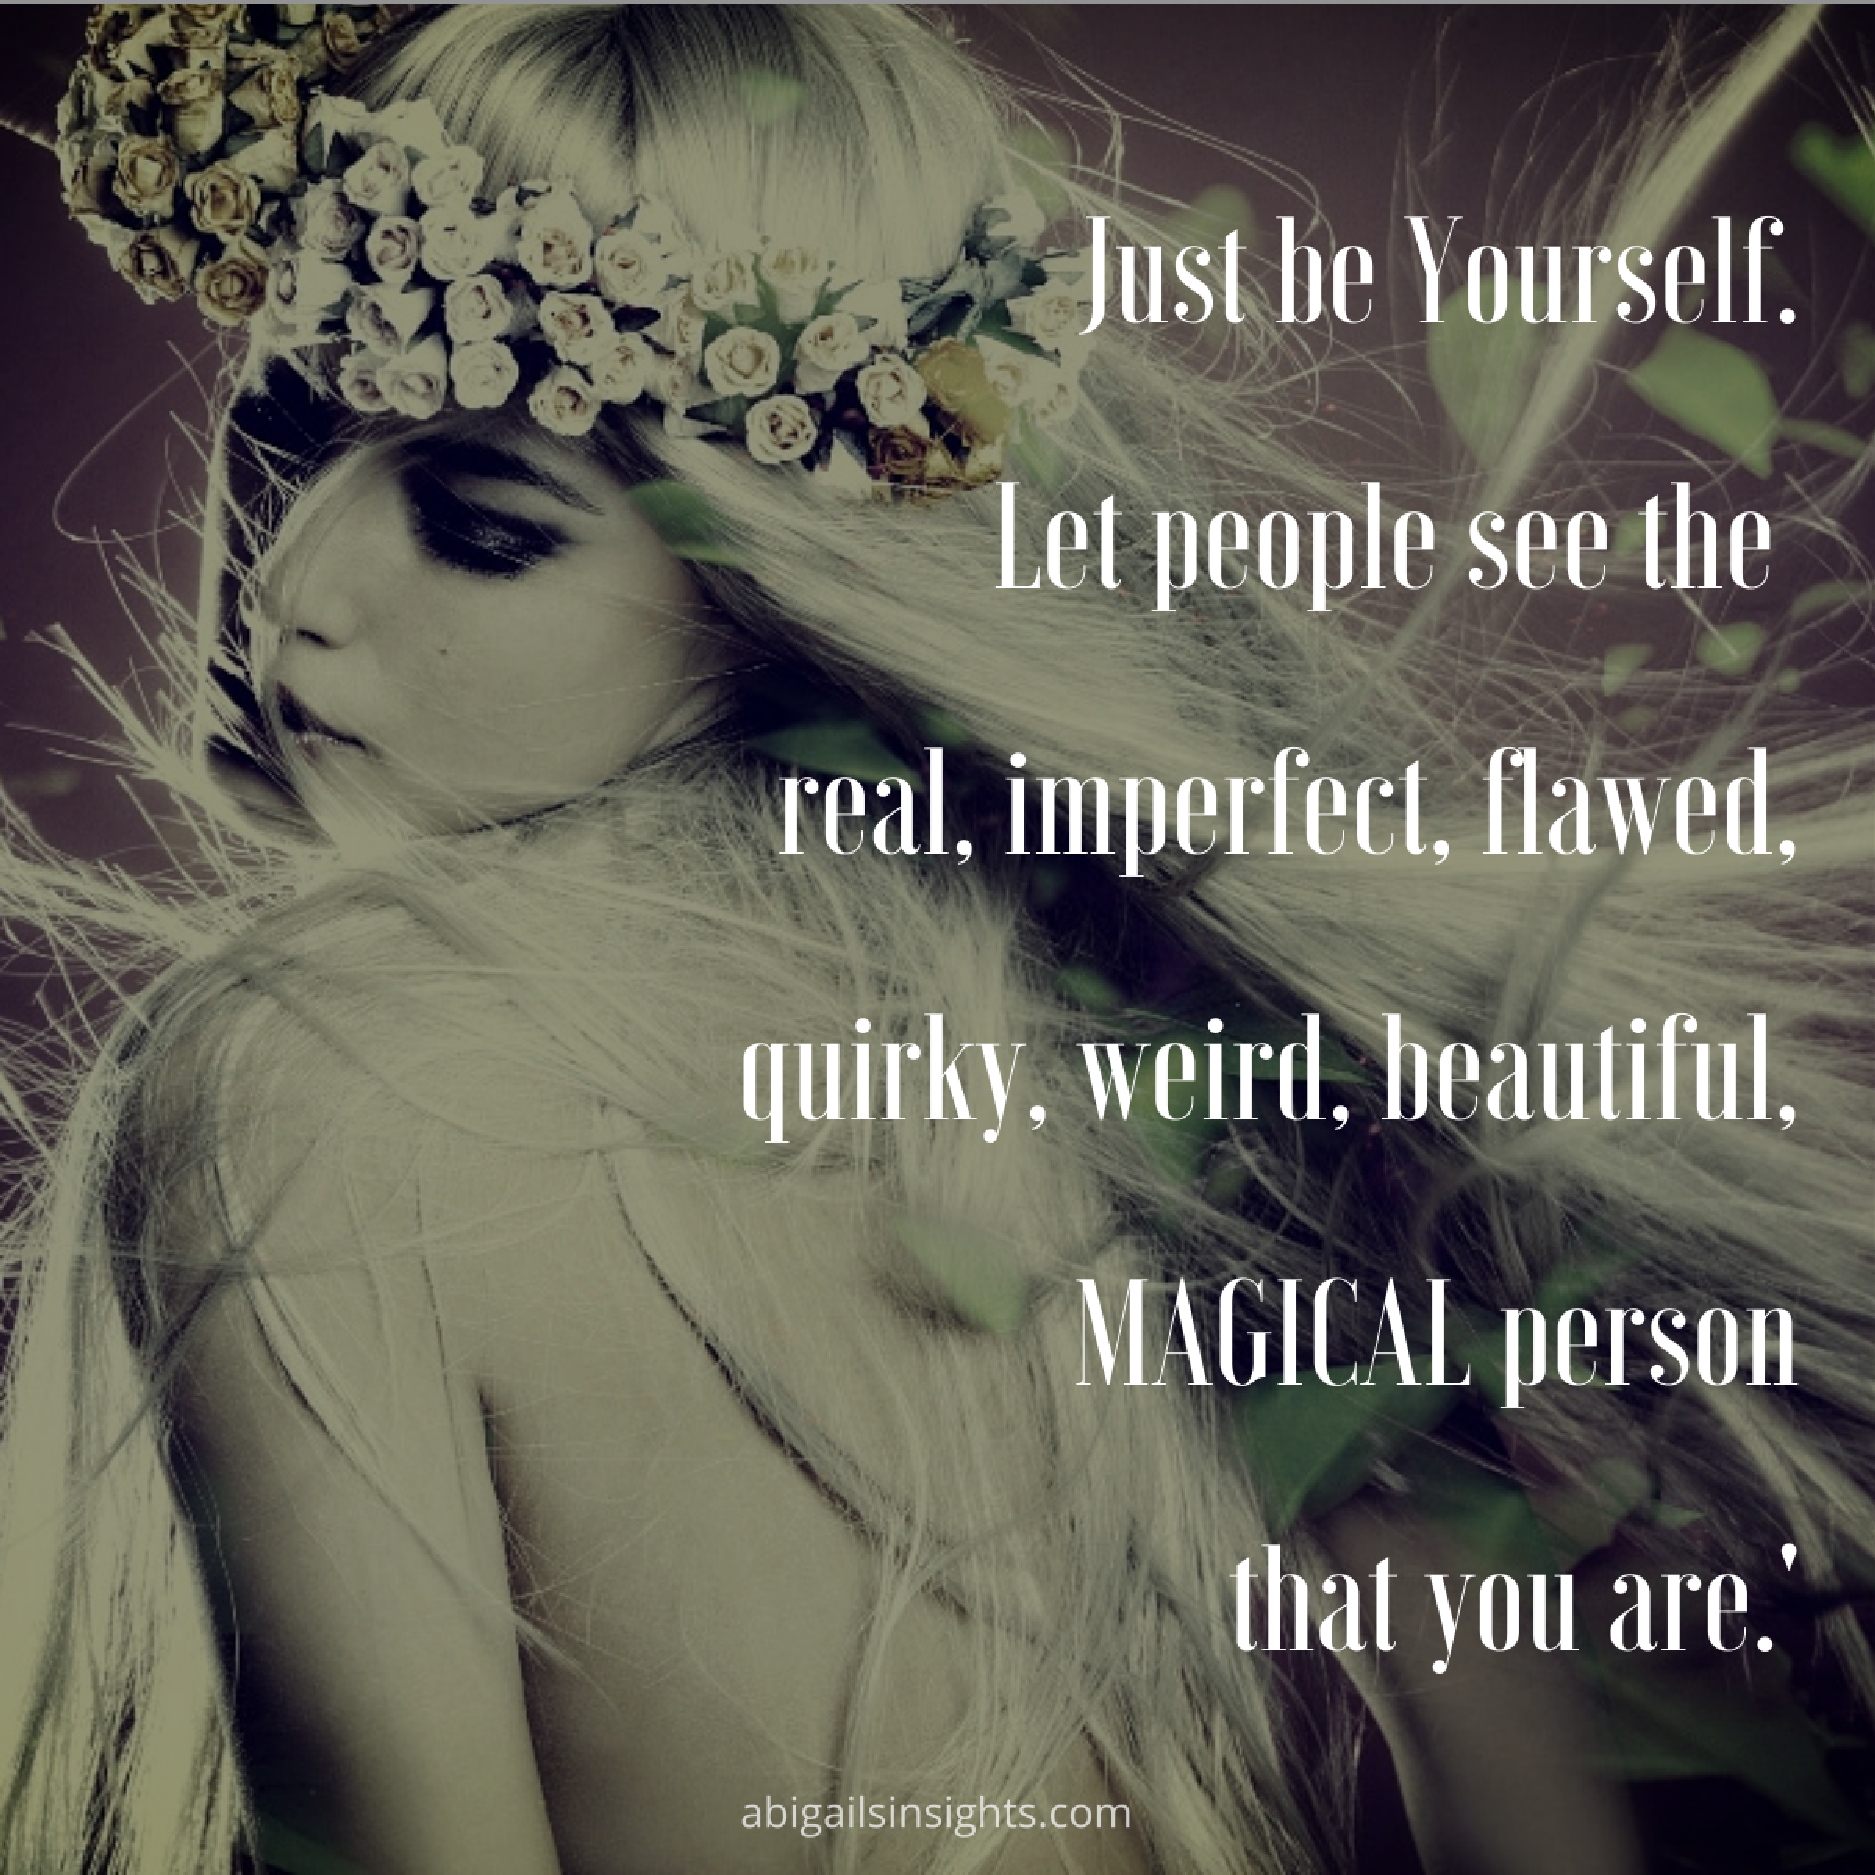 quote: just be yourself, let people see the real, quirky, flawed, magical being you are